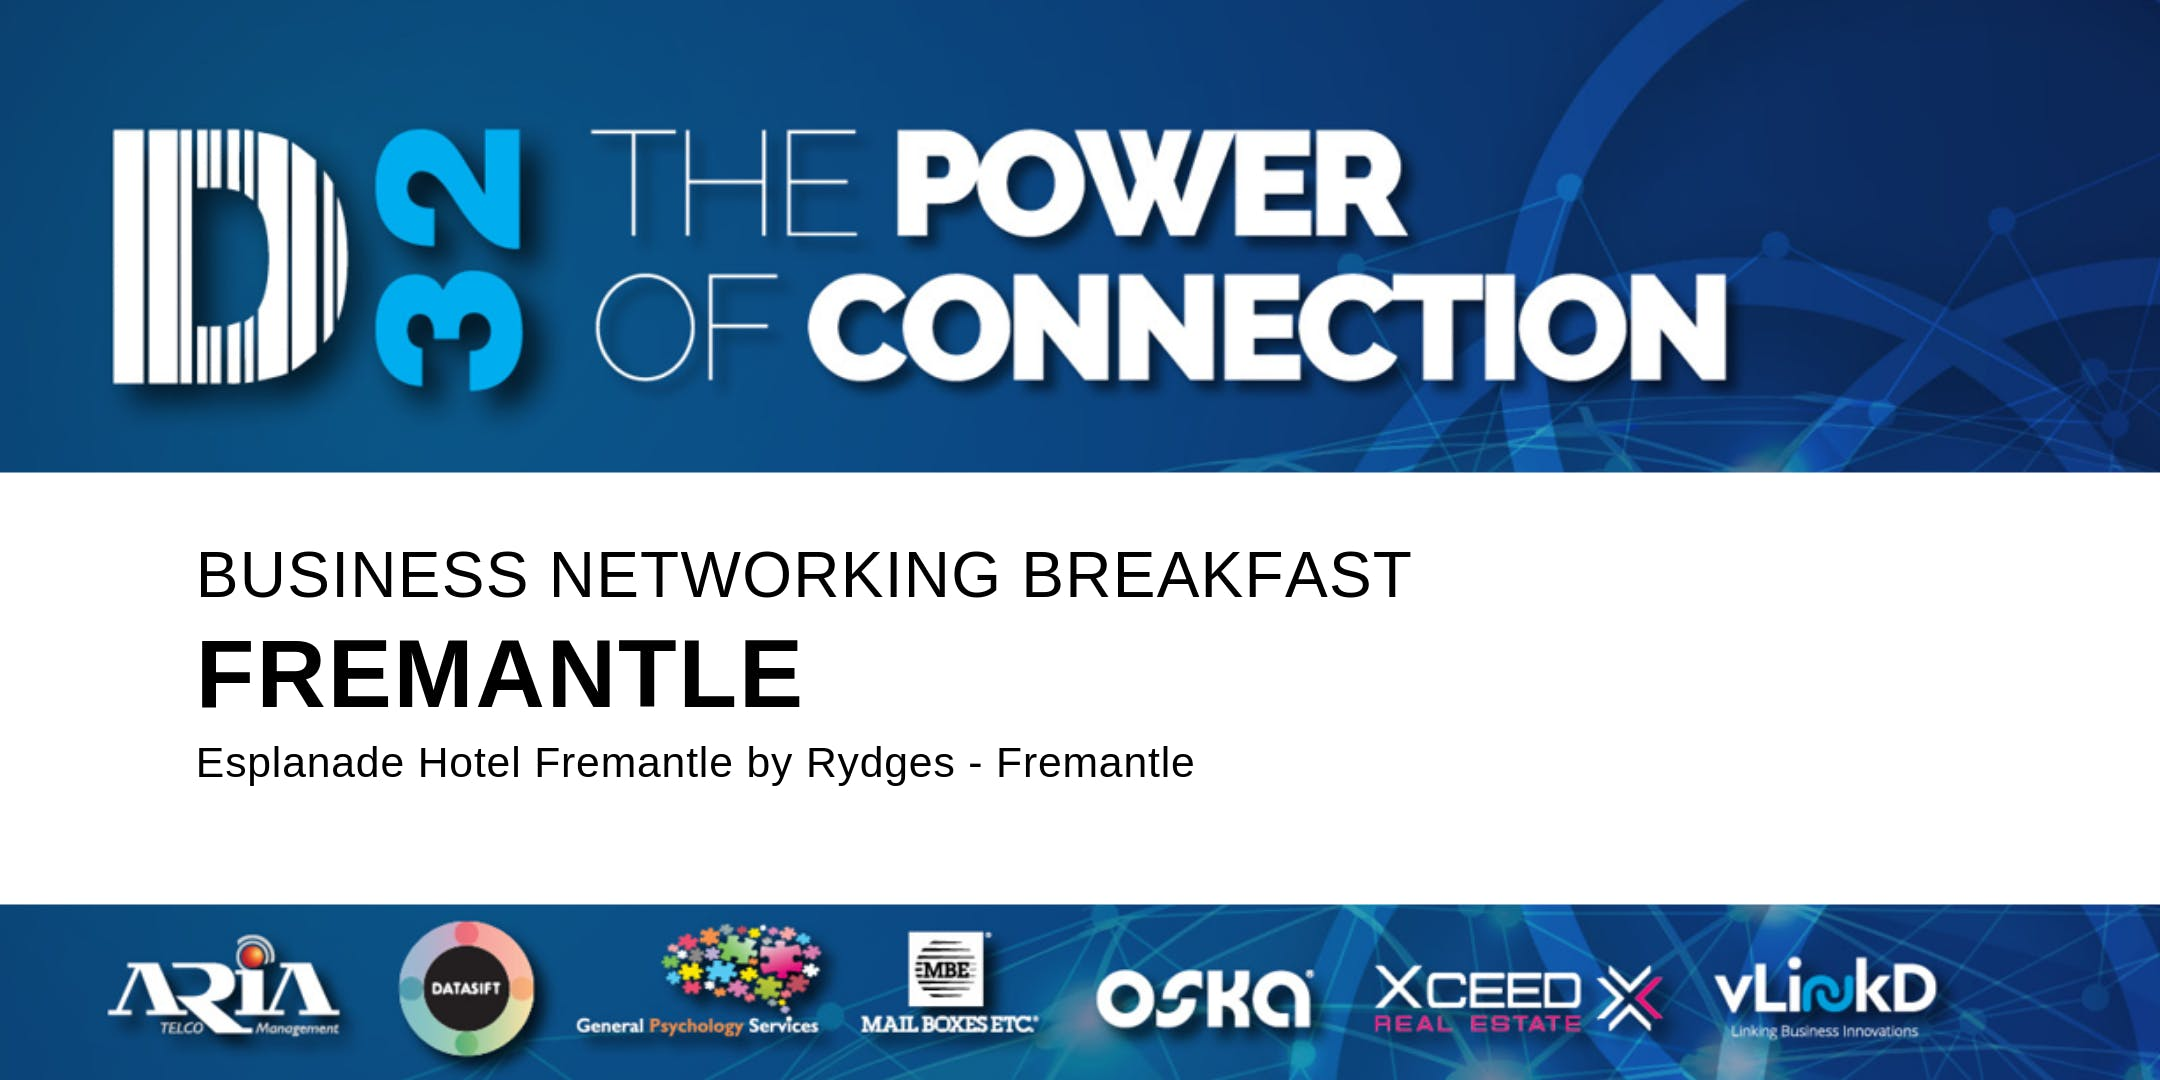 District32 Business Networking Perth  Fremantle - Wed 11th Dec